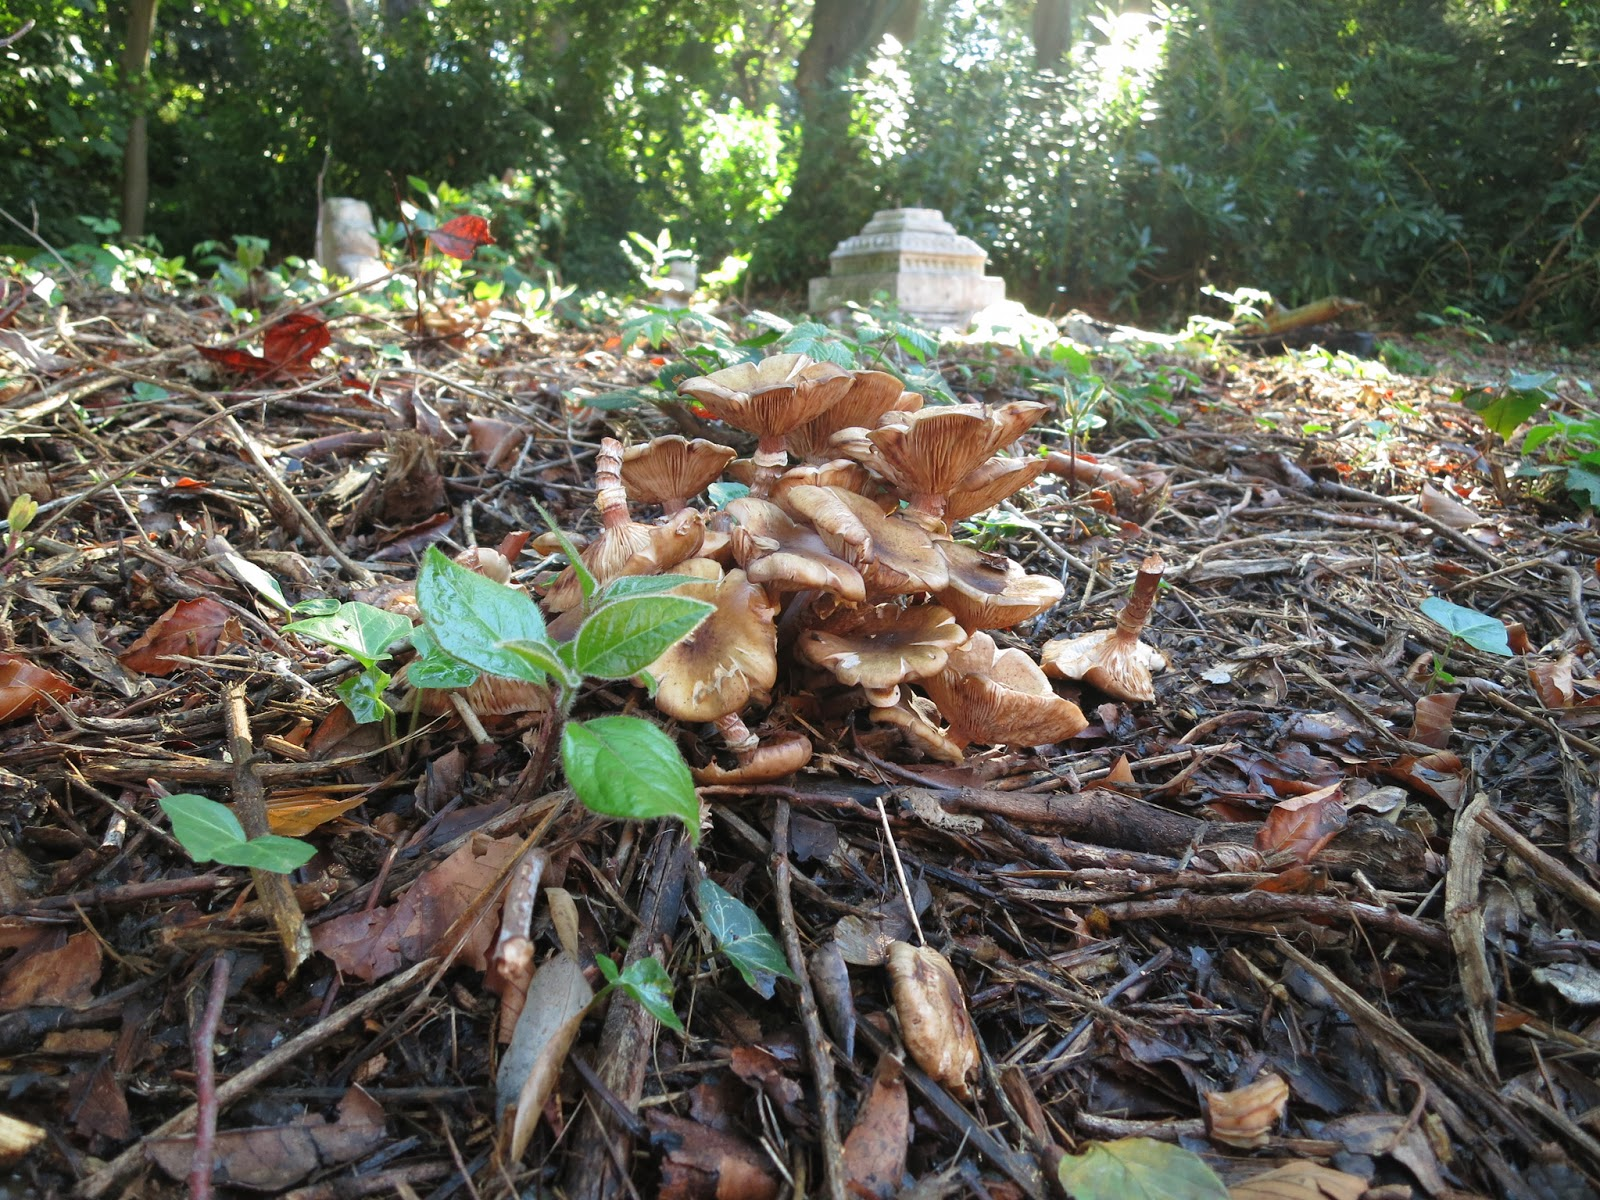 Brown fungi and contoneaster (?) seedling in foreground. Tomb below trees.